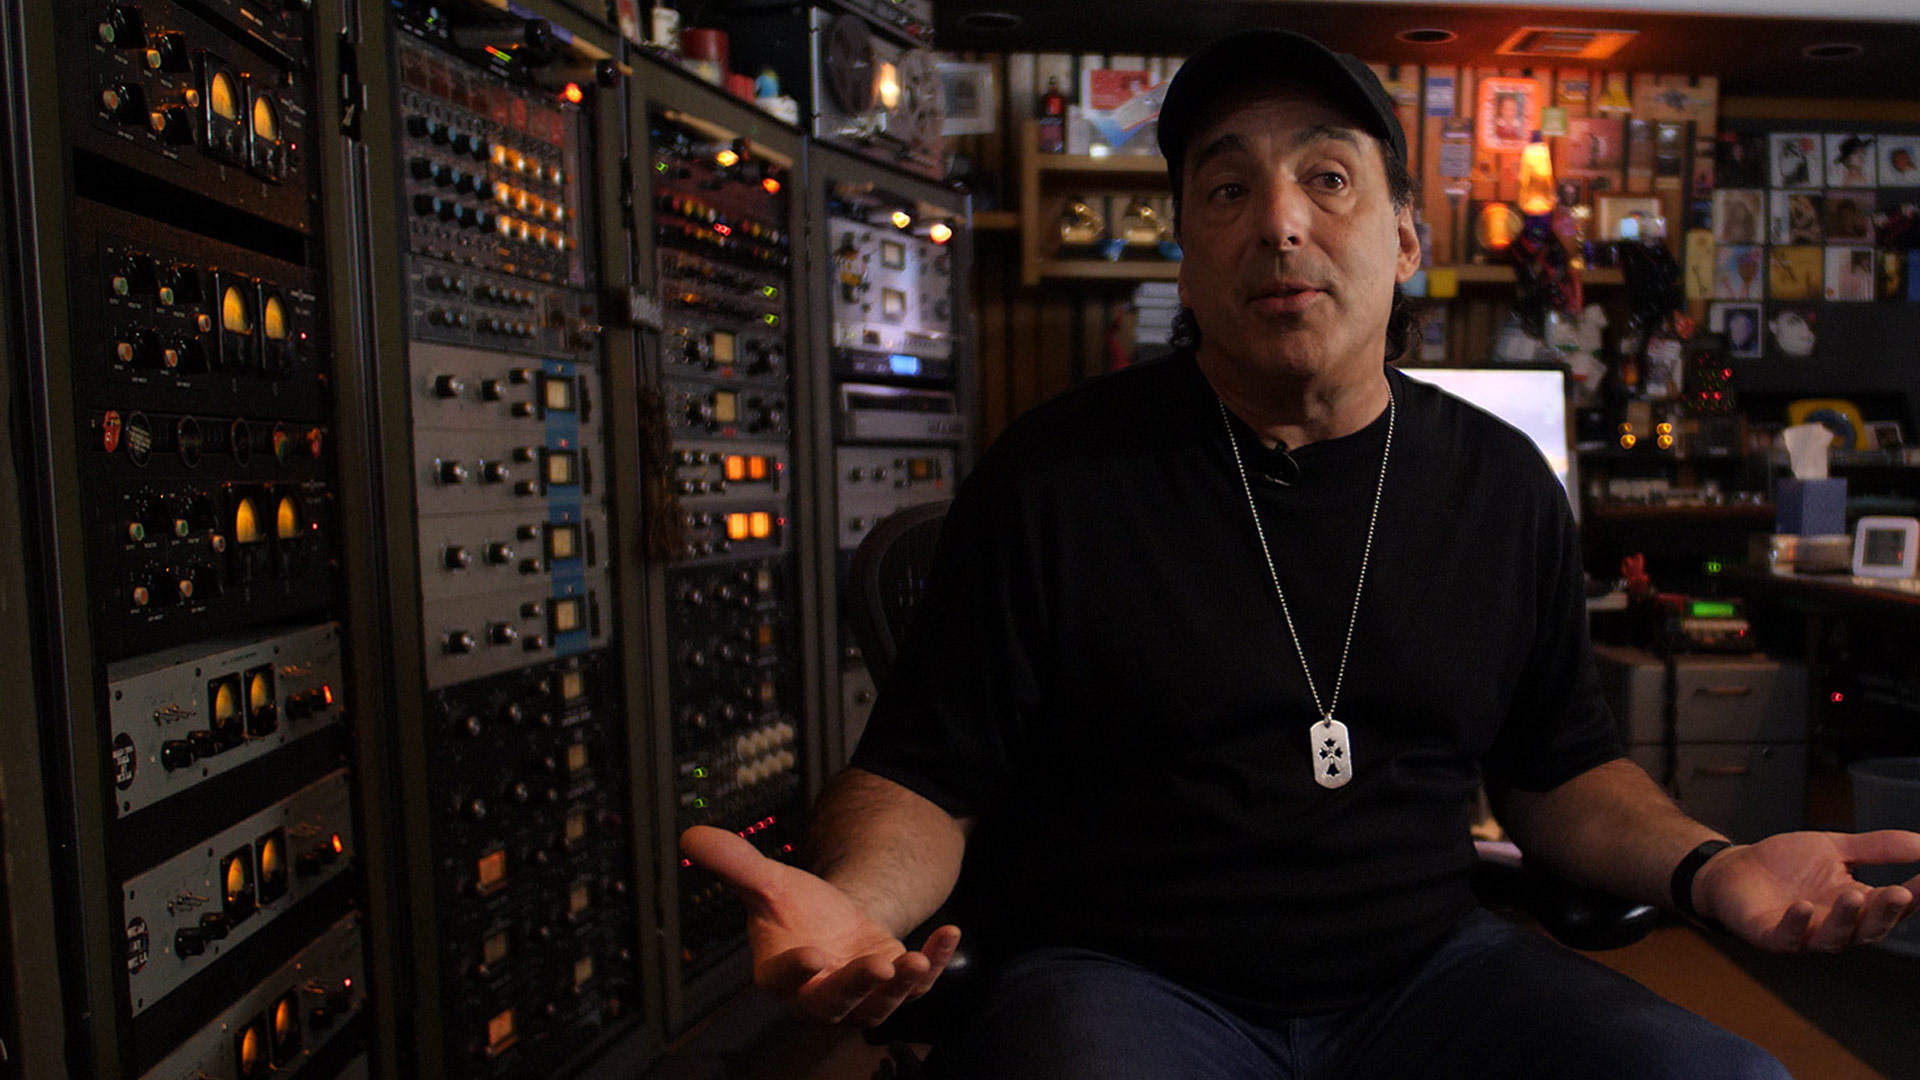 Chris Lord-Alge Expansion SSD & Trigger